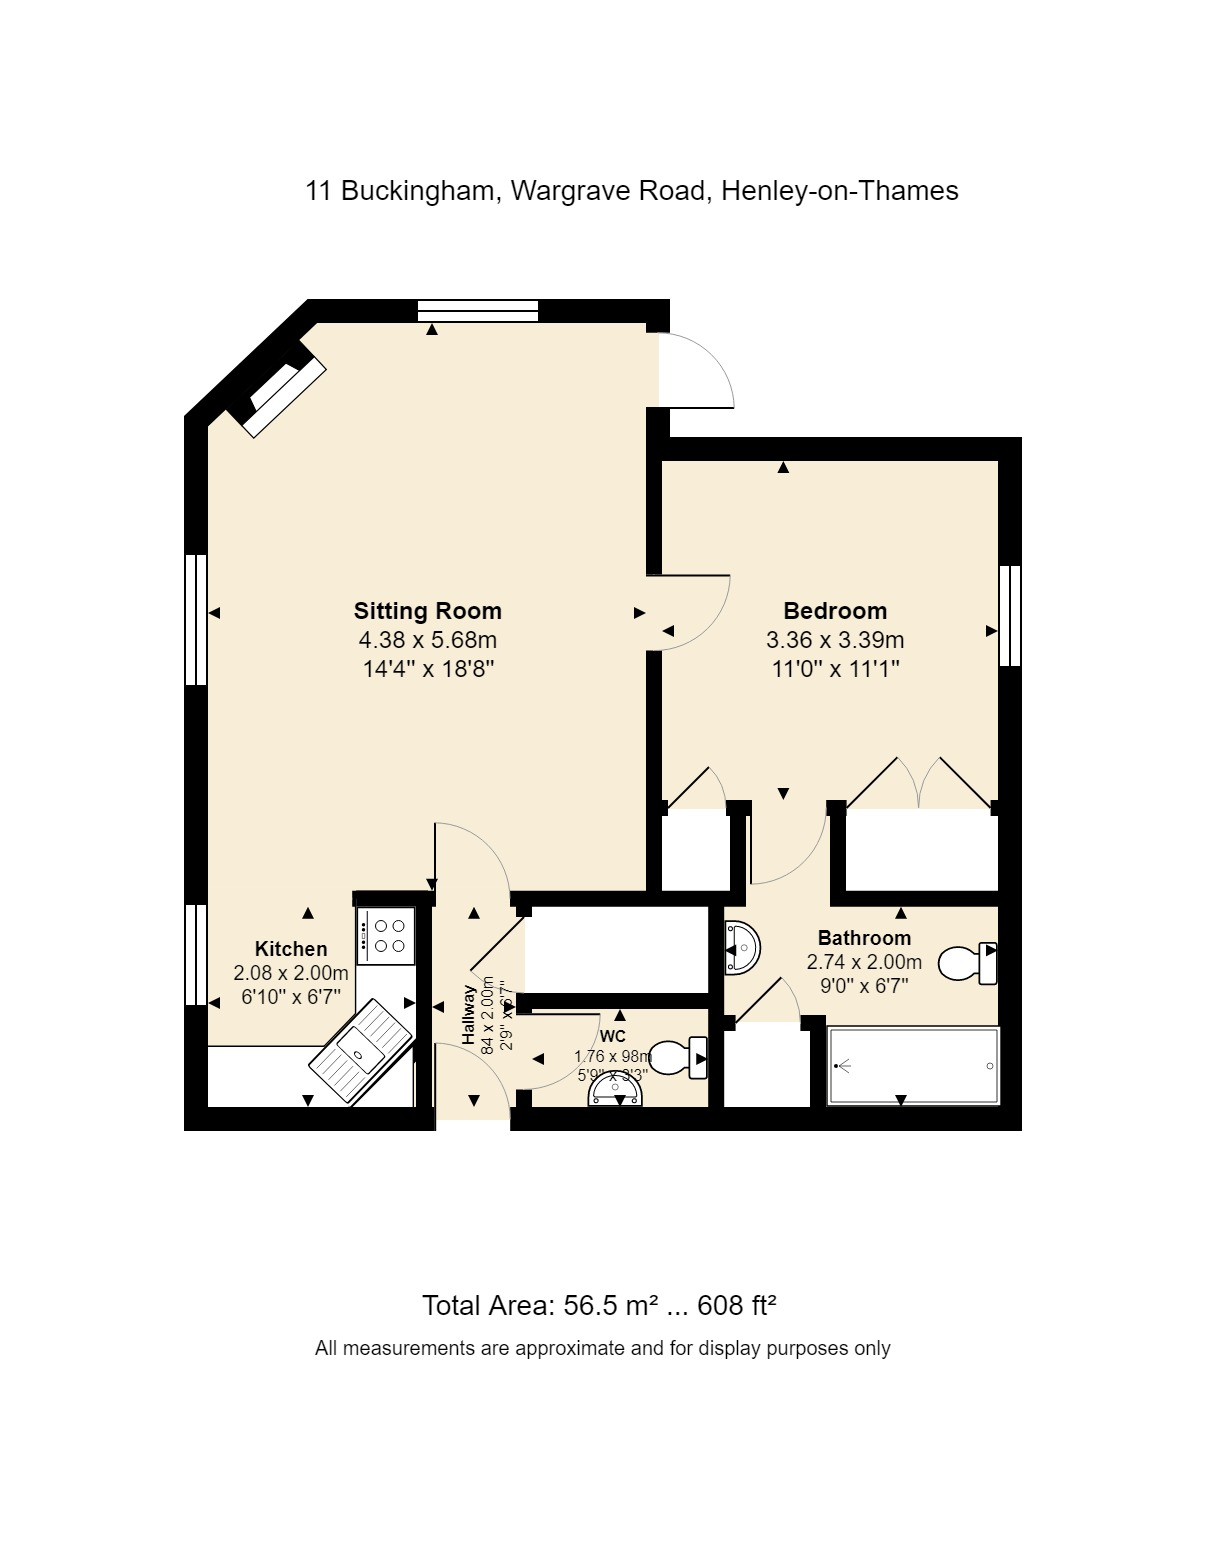 11 Buckingham Floorplan